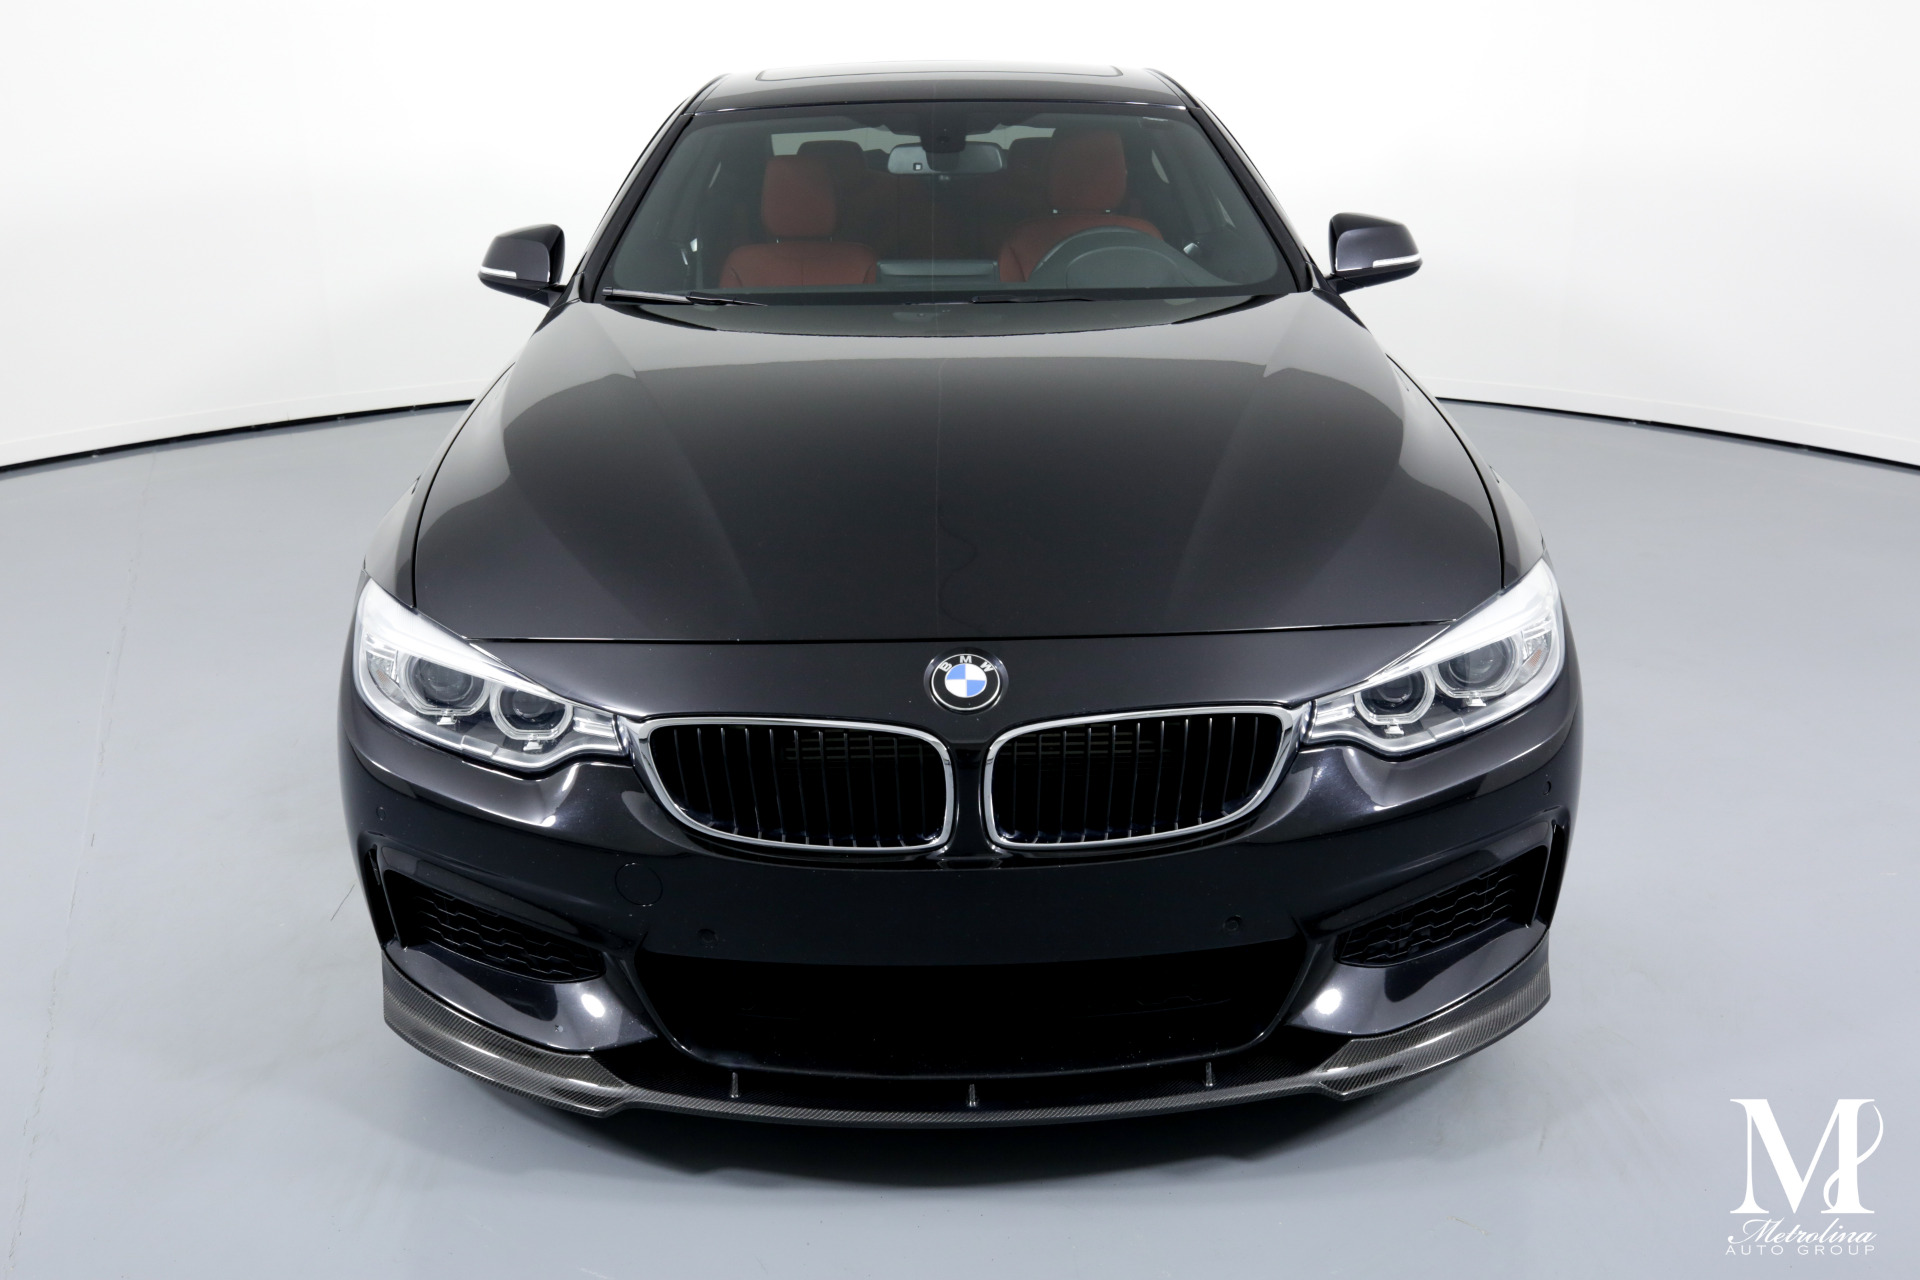 Used 2015 BMW 4 Series 435i for sale Sold at Metrolina Auto Group in Charlotte NC 28217 - 3